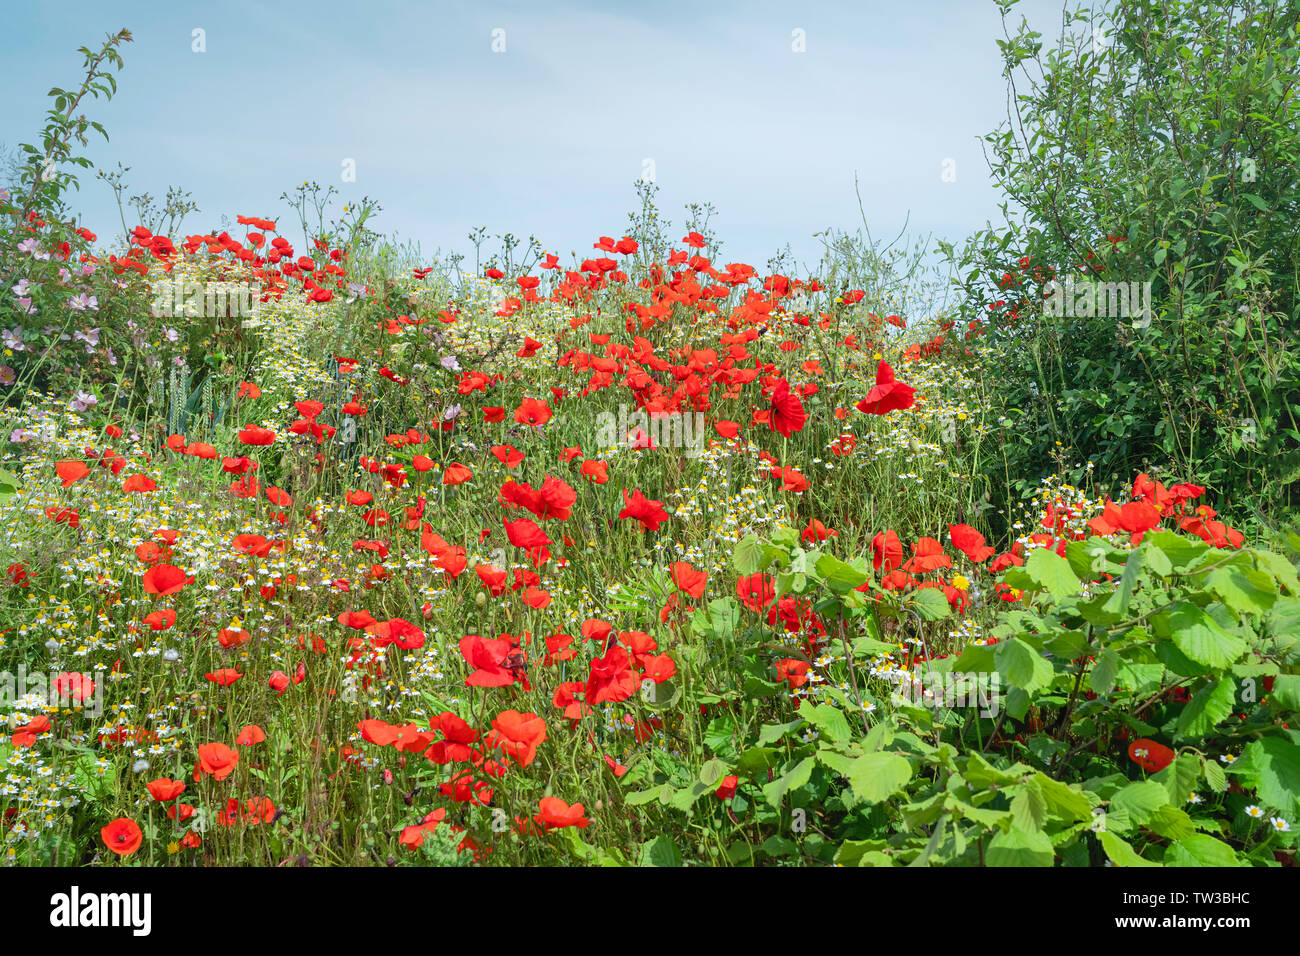 Wild flowers, poppies and daisies, dance in the wind on a fine sunny morning along Minster Way, Beverley, Yorkshire, UK. - Stock Image